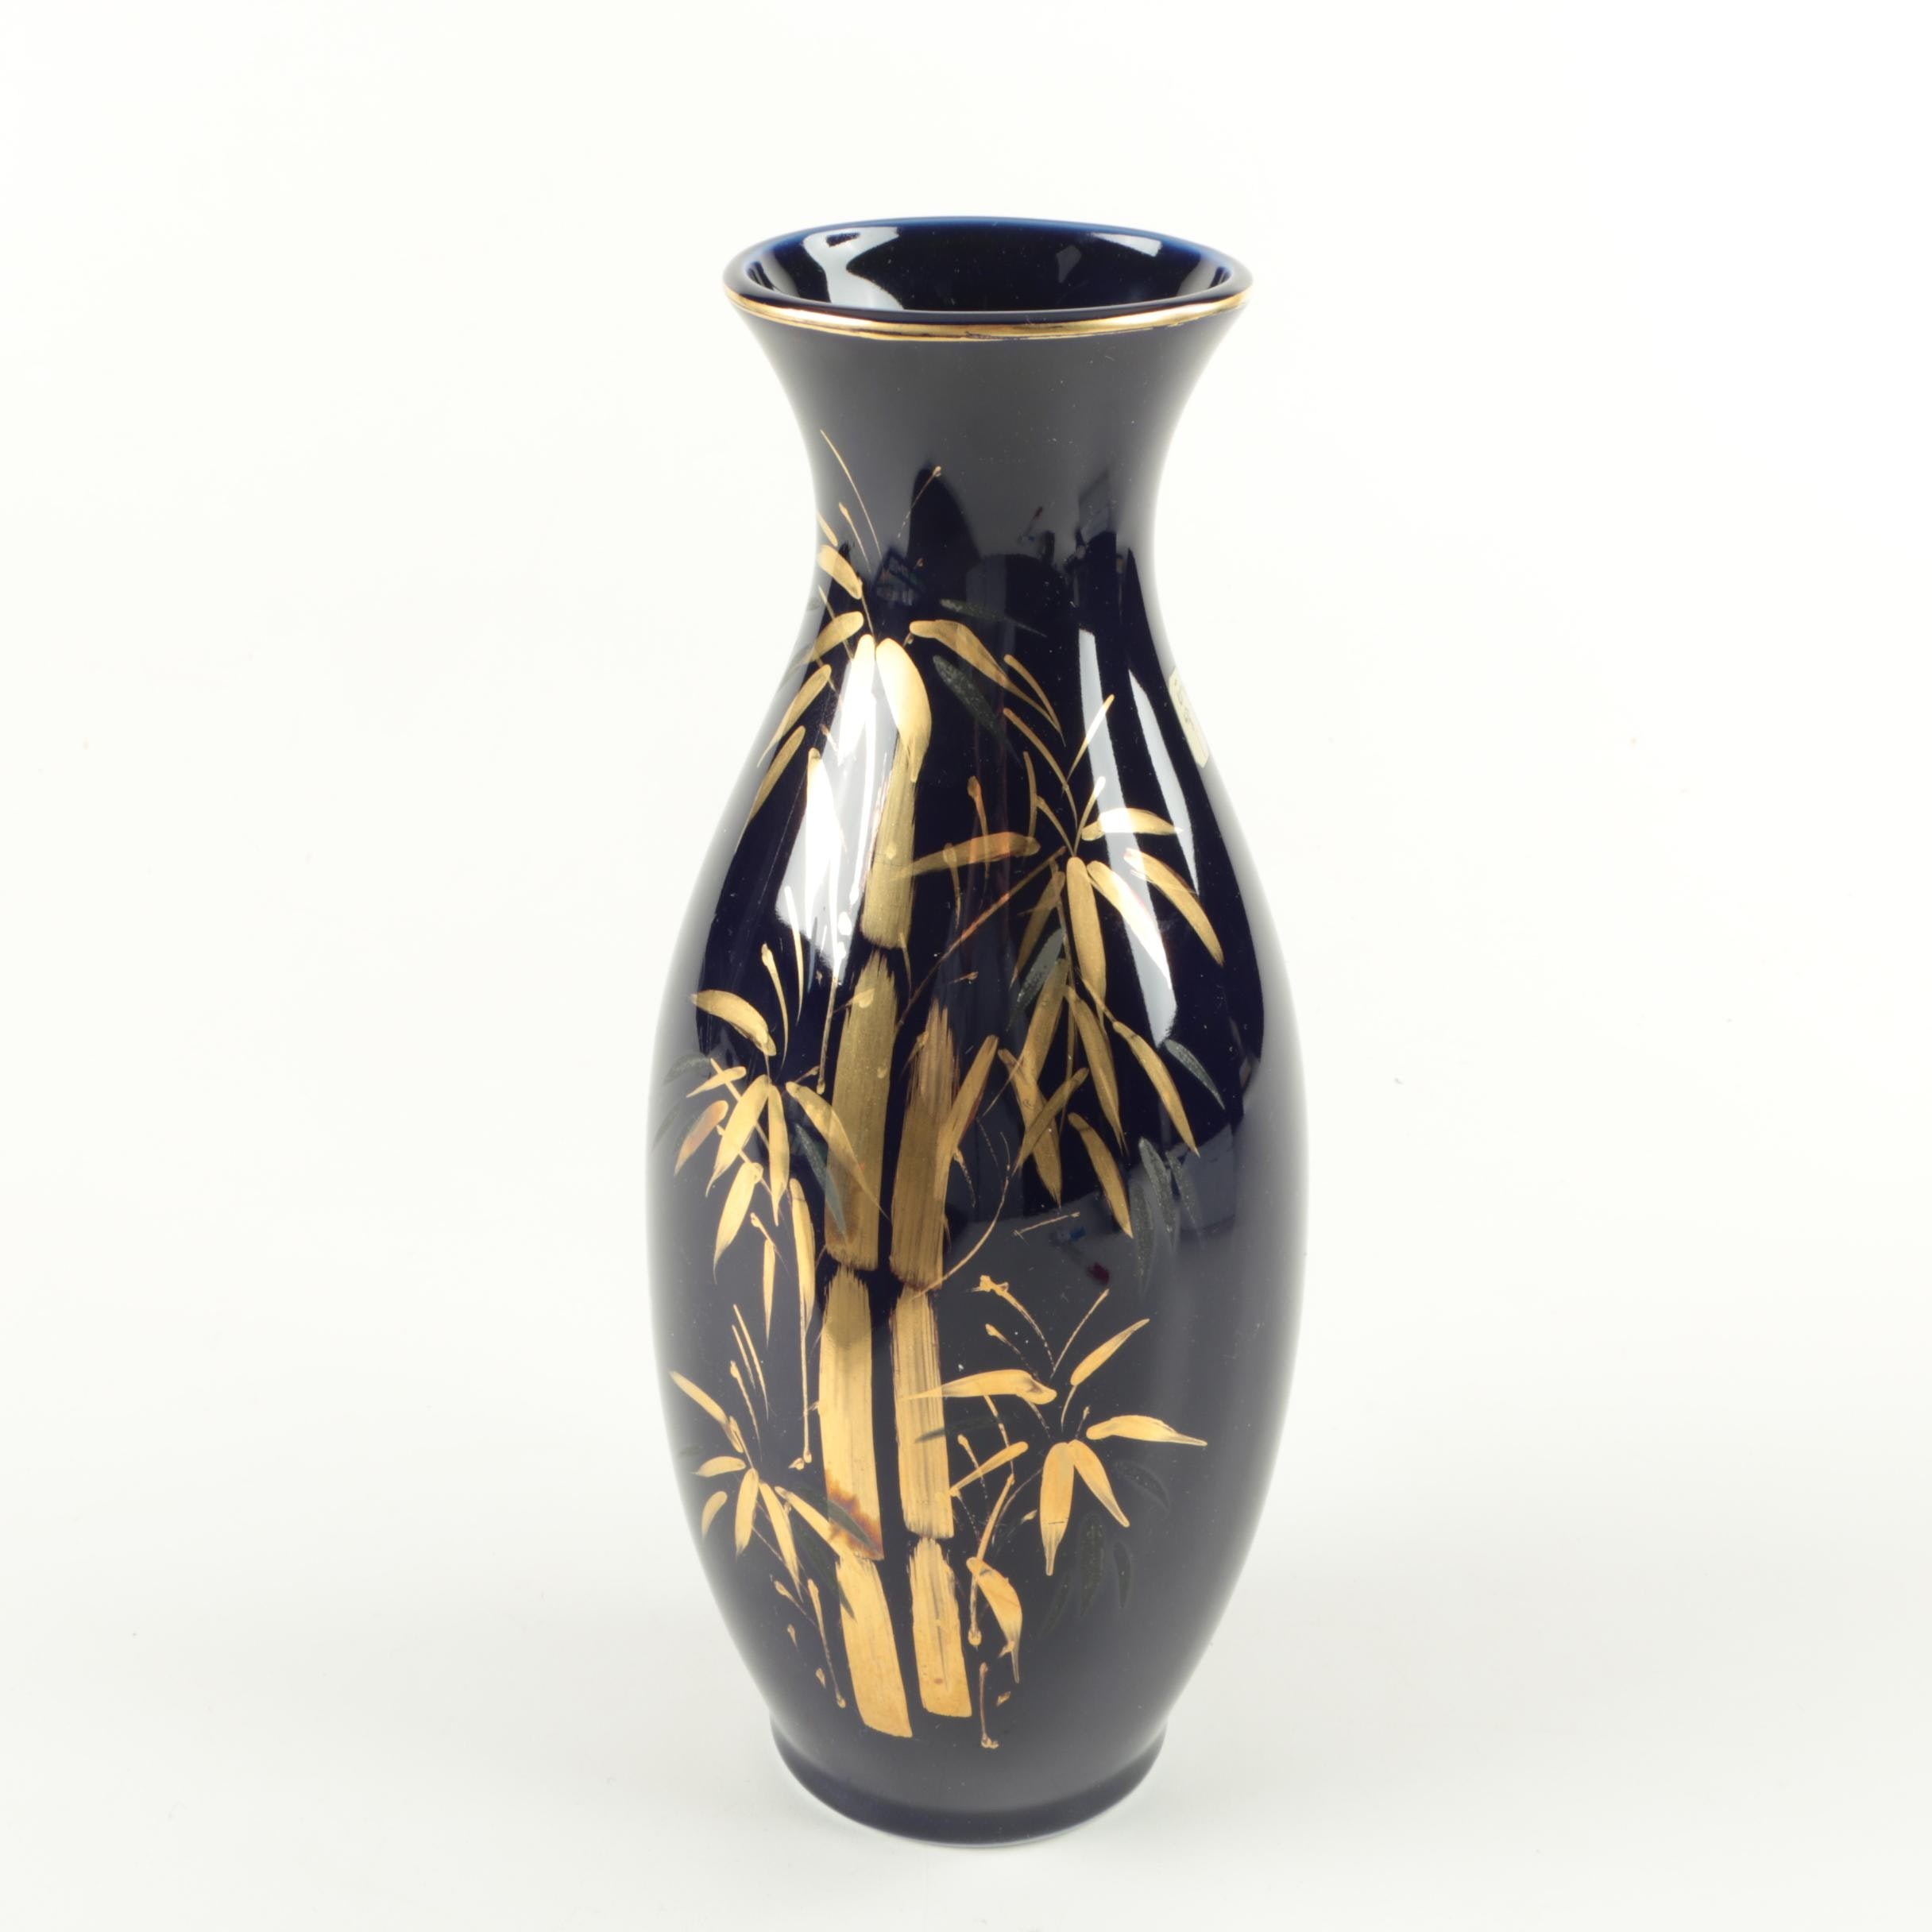 East Asian Glass Vase